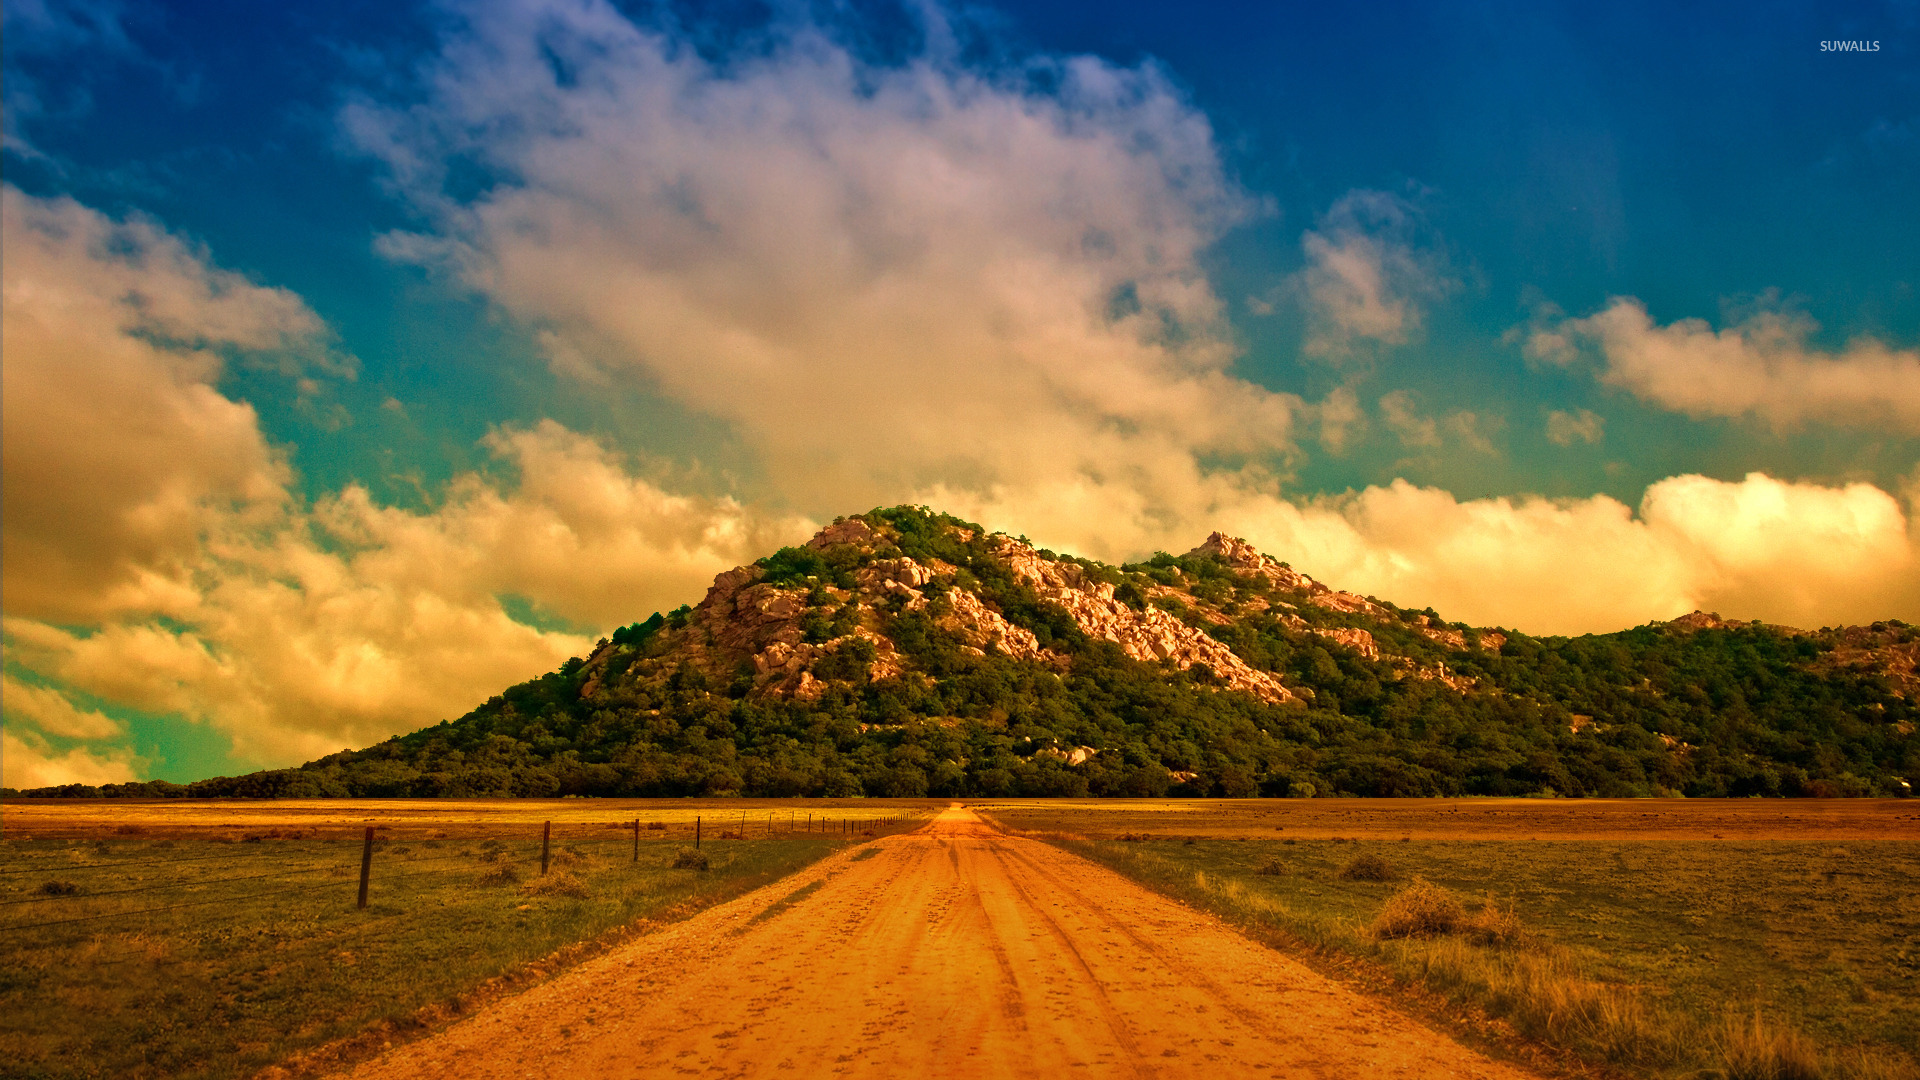 Dirt road to the mountain wallpaper  Nature wallpapers  22850